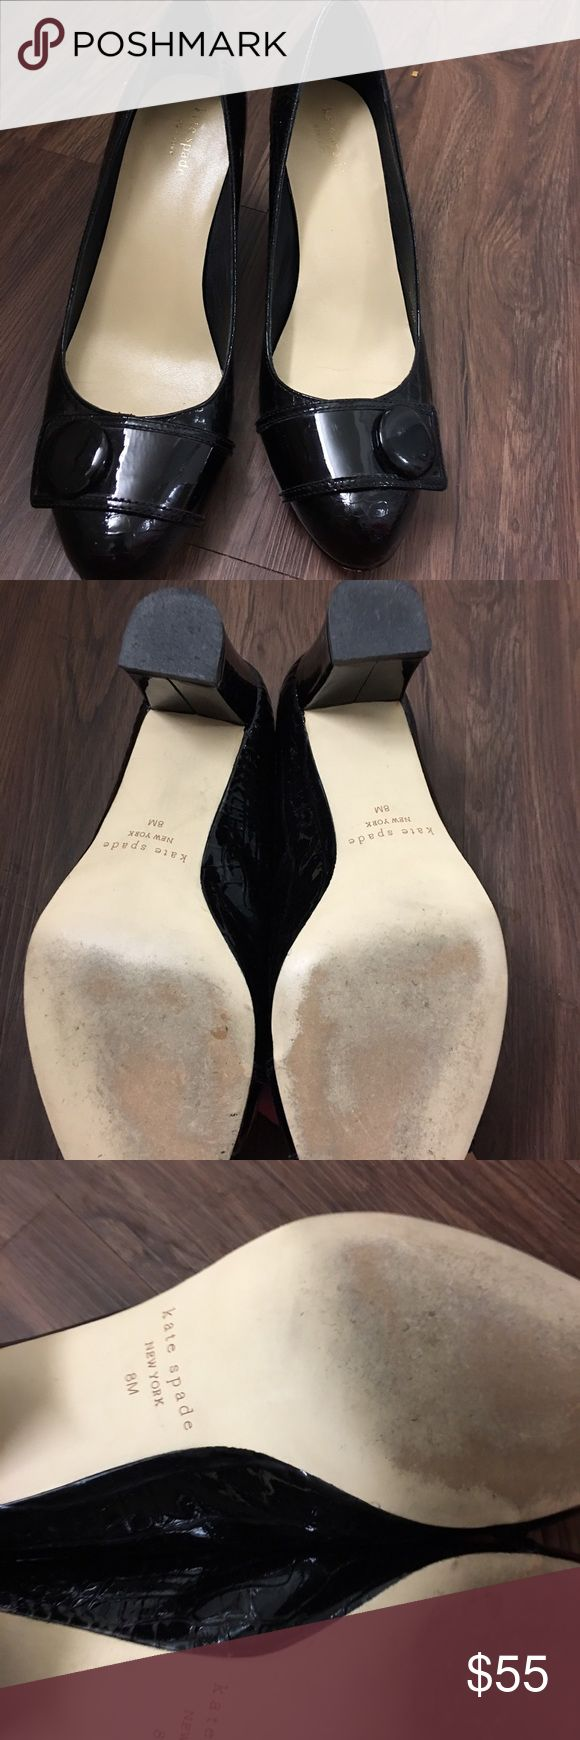 Kate Spade Shoes Wore couple times. Like brand new. Excellent condition. kate spade Shoes Heels